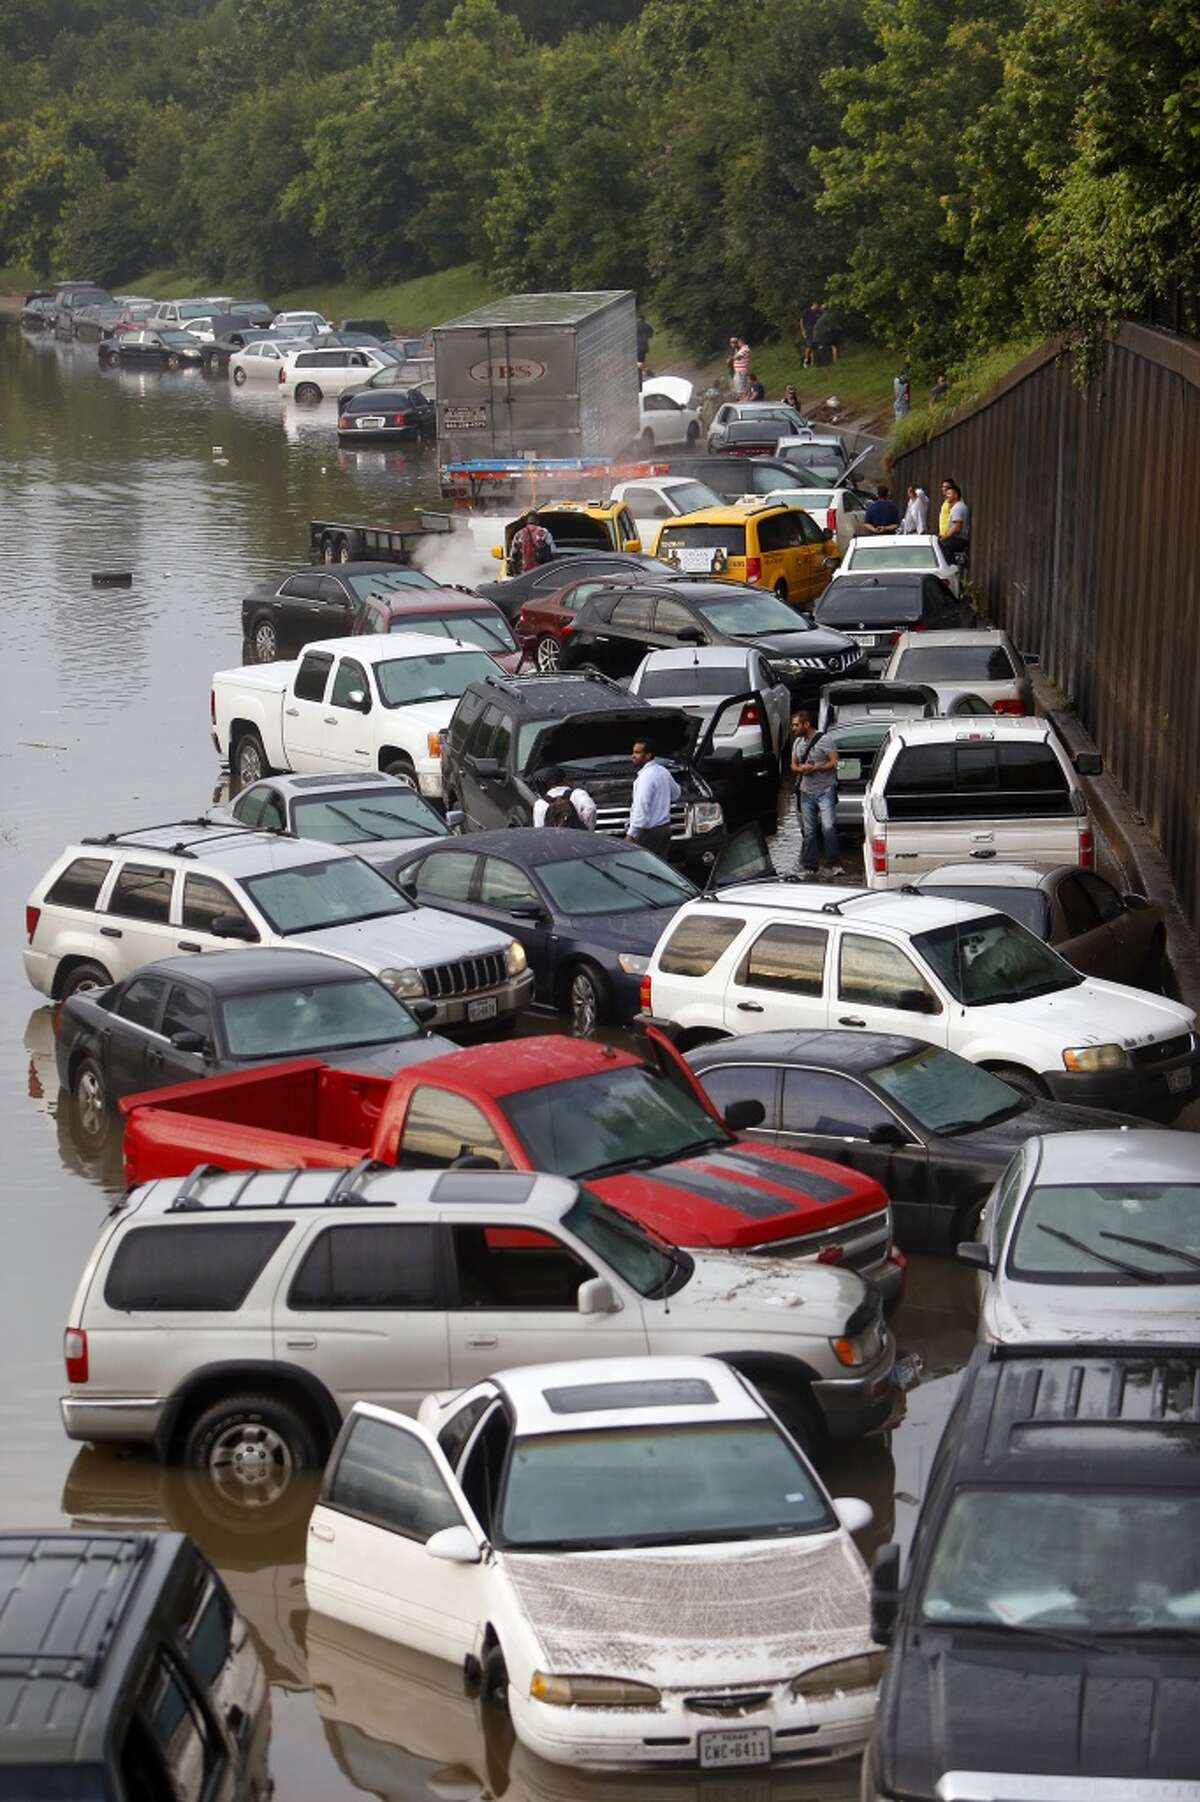 Motorists are seen stranded along I-45 along North Main after storms flooded the area, Tuesday, May 26, 2015, in Houston. (Cody Duty / Houston Chronicle)